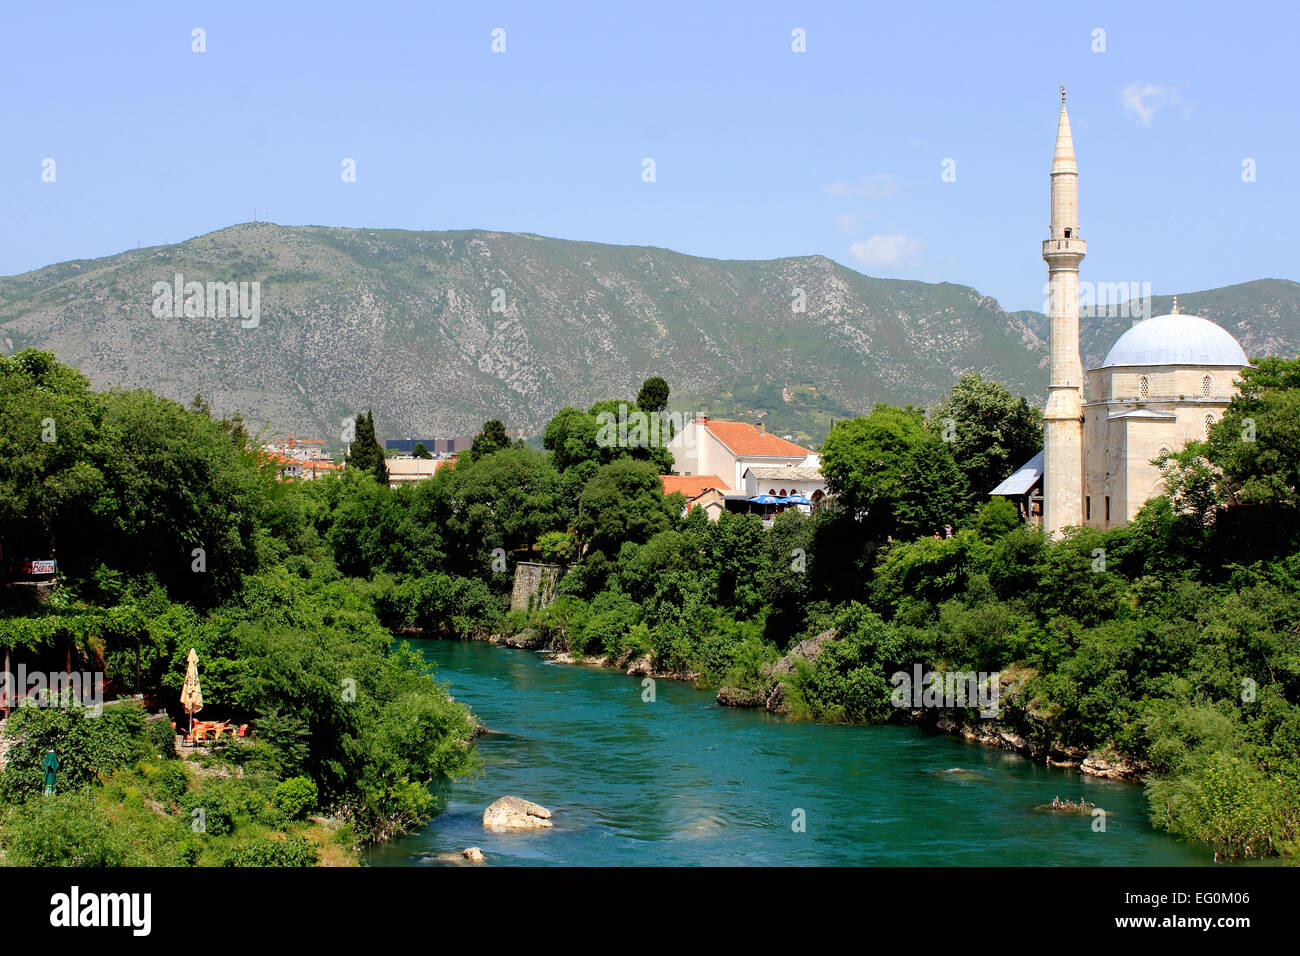 Bosnia and Herzegovina, Mostar, View of old town - Stock Image